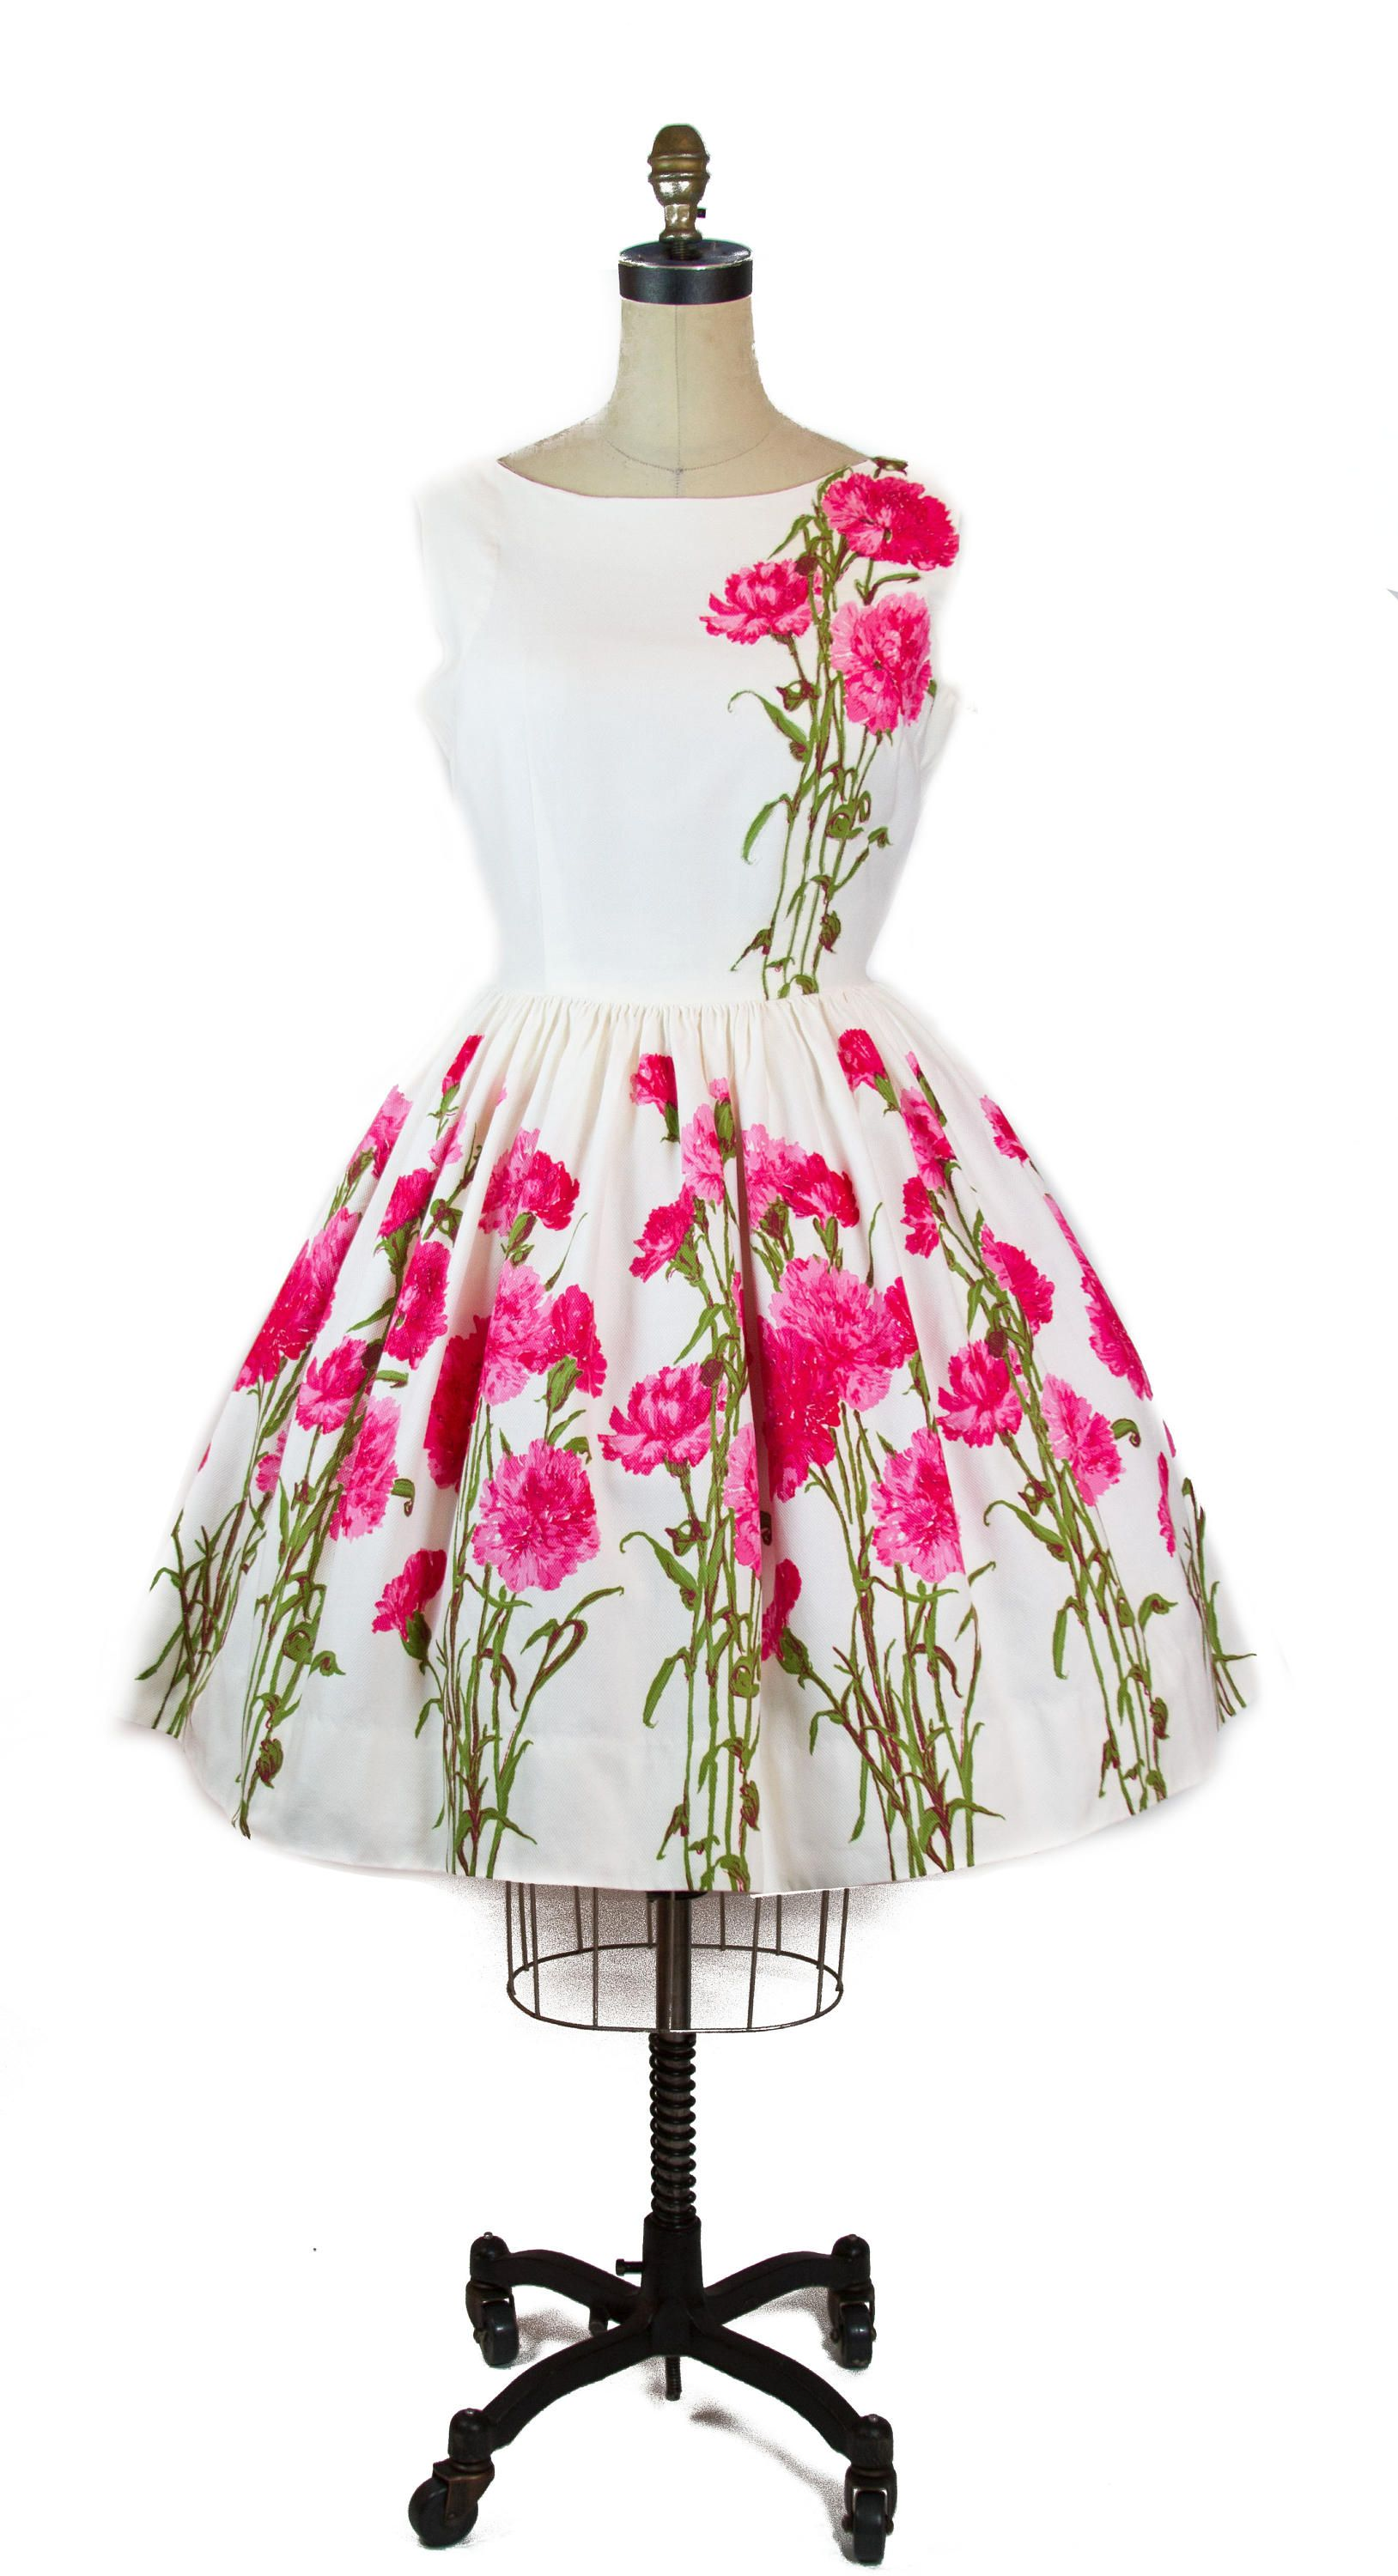 f286438b80ab5a 1950s white cotton sundress has a skirt of an amazing oversized border  print of bright pink